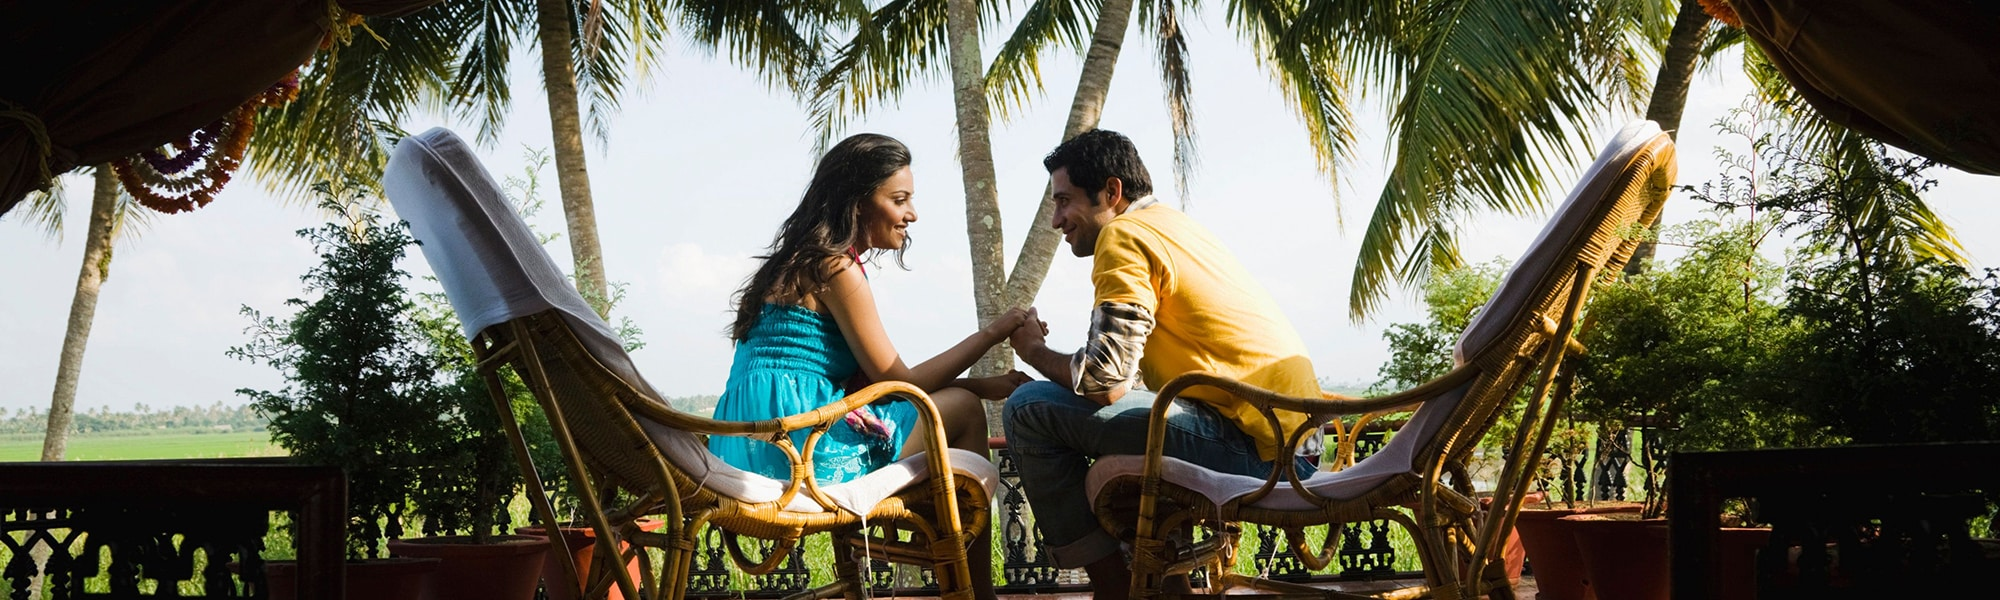 Kerala Houseboat Honeymoon Tour Packages